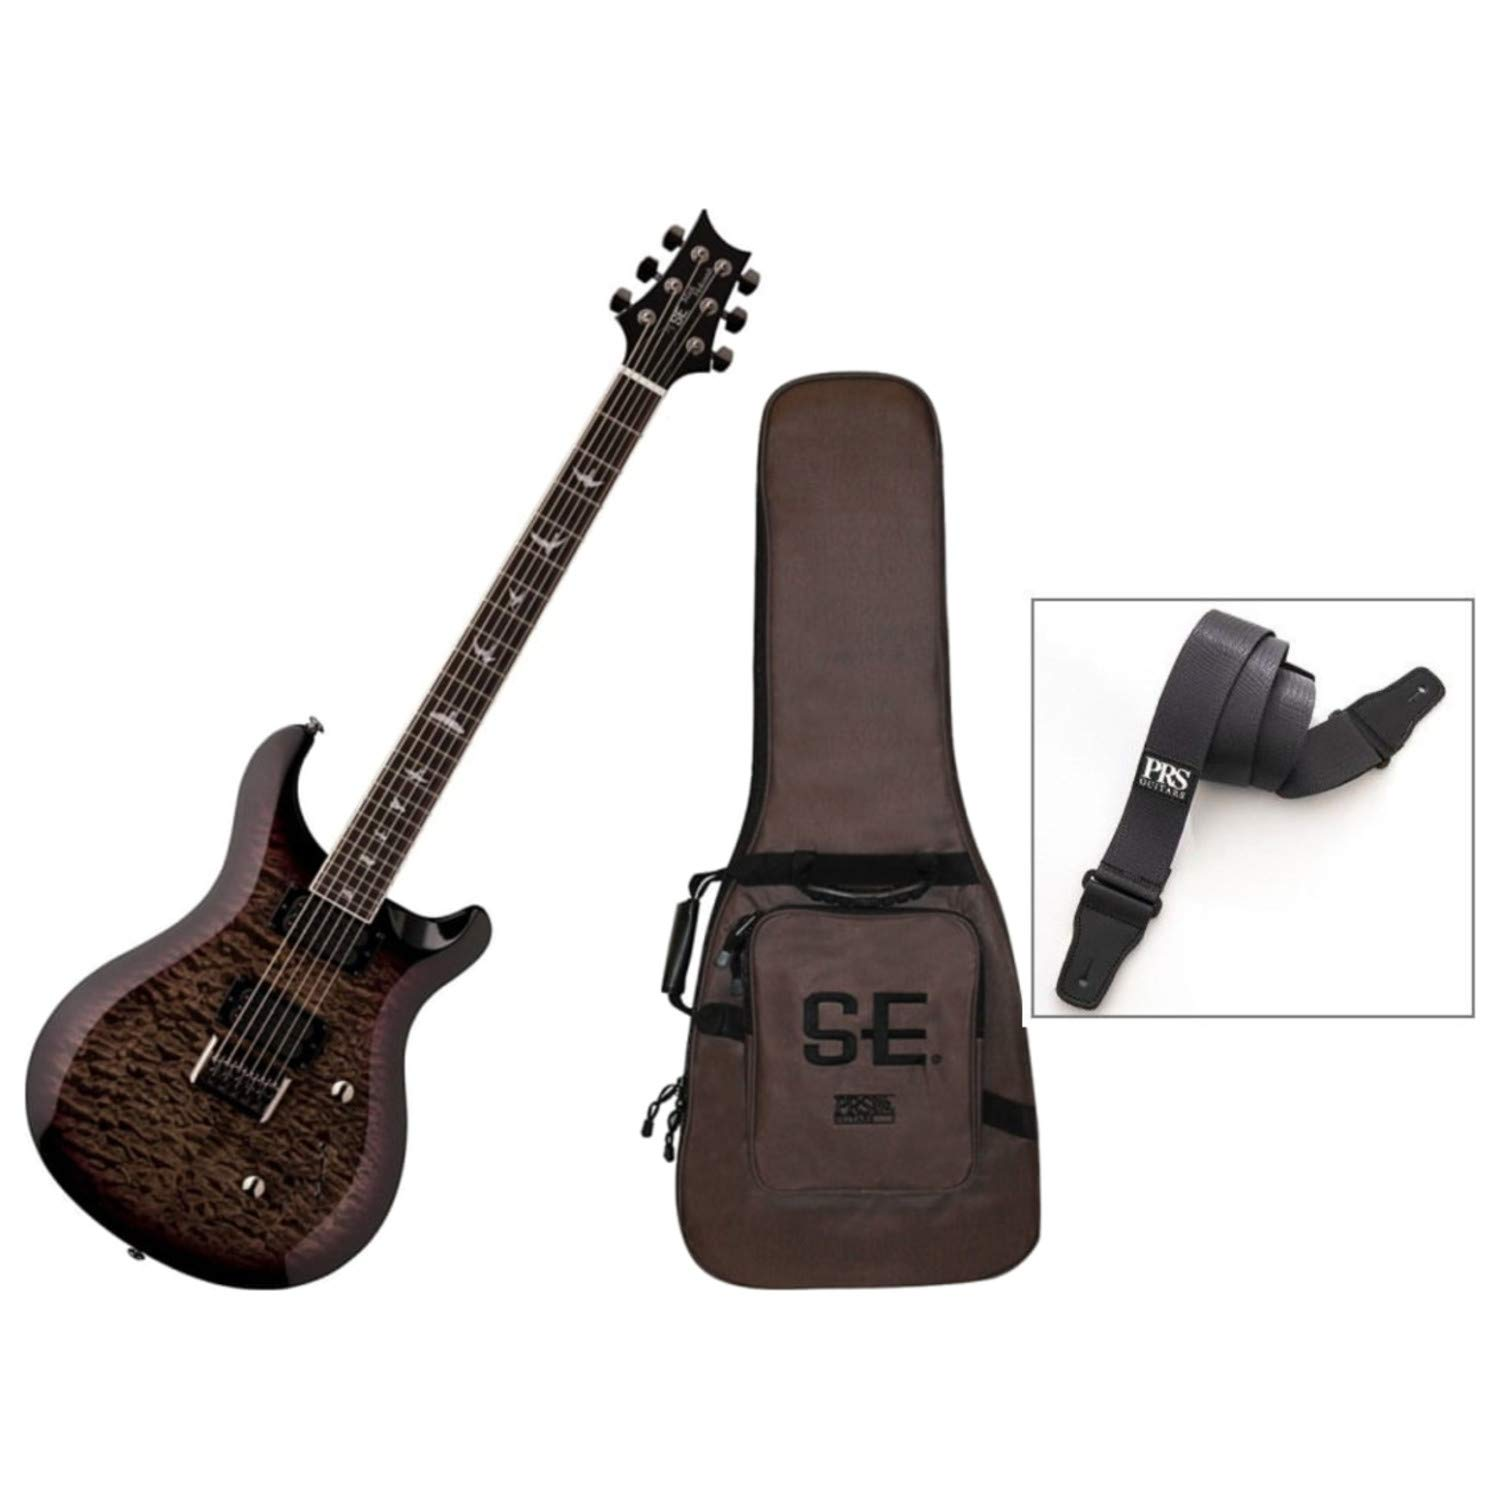 Cheap PRS SE Mark Holcomb Signature Electric Guitar Holcomb Burst w/Gig Bag and Strap Black Friday & Cyber Monday 2019